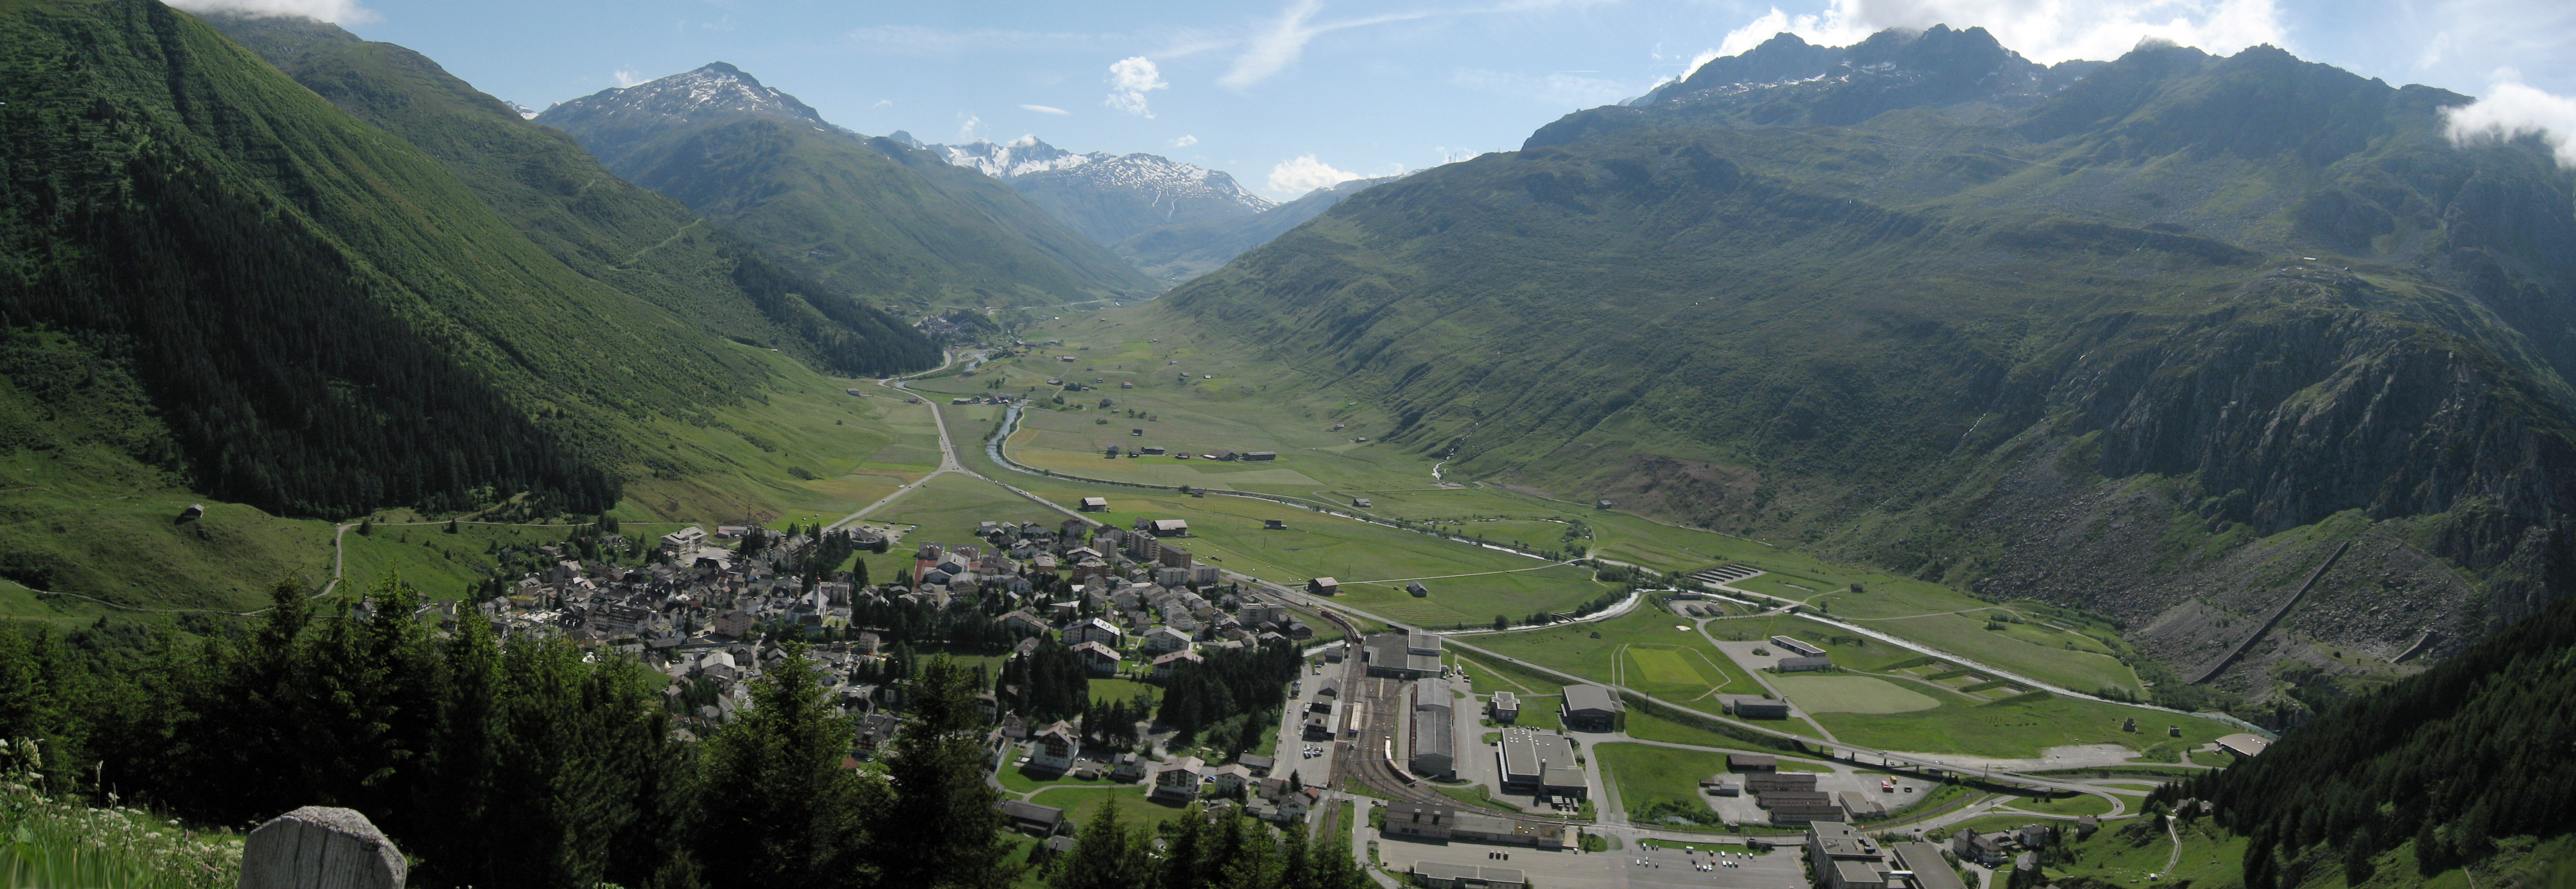 Andermatt Switzerland  city photos gallery : In the town of Andermatt, Switzerland, here we are aprs motorcycling ...